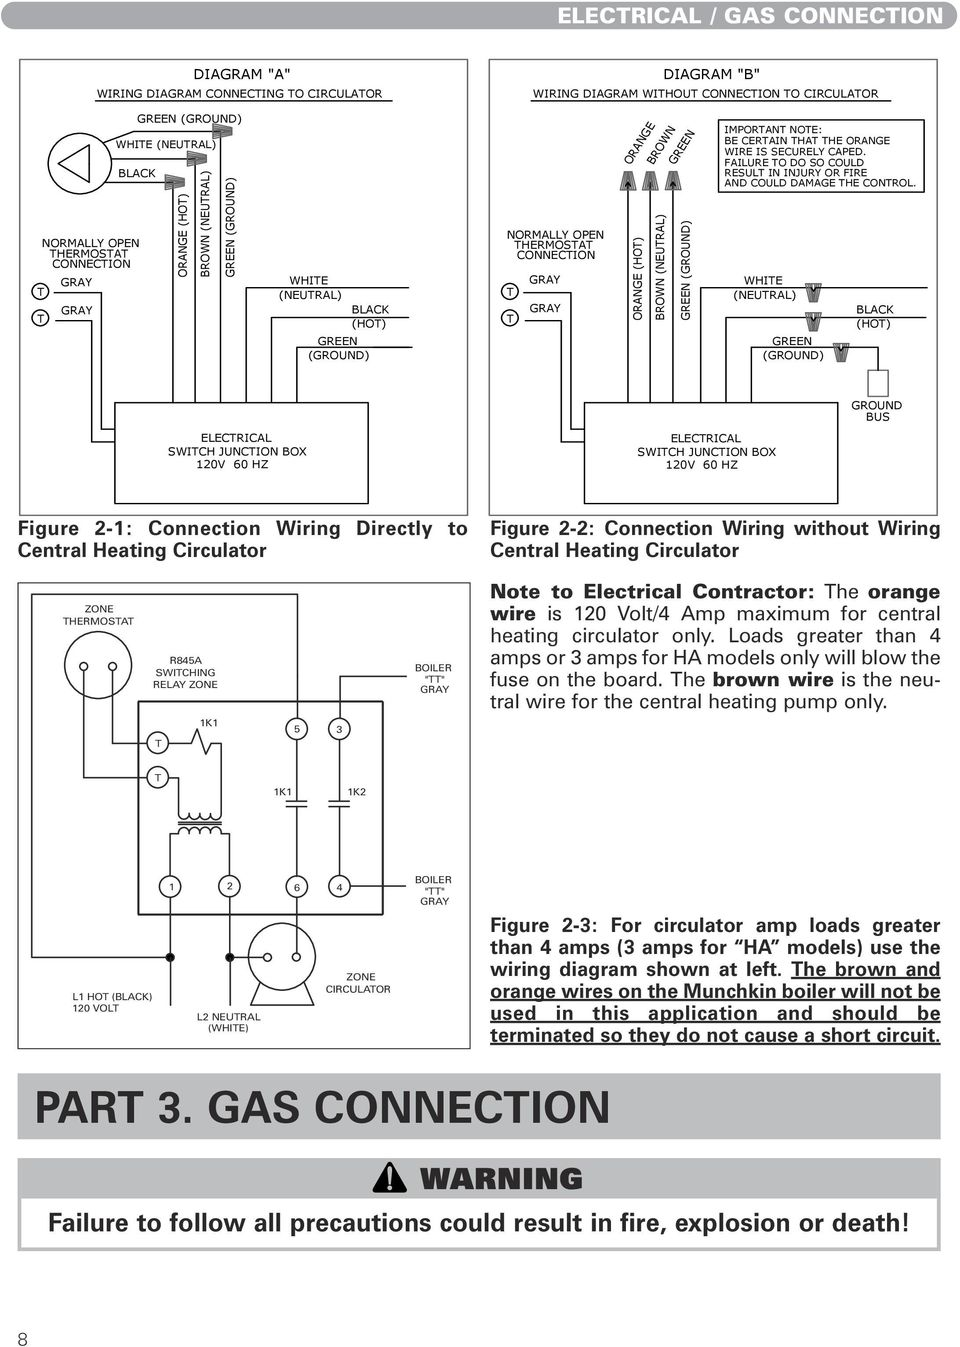 Munchkin Boiler Wiring Amptec Diagram Brown Neutral Green Ground Important Note Be Certain That The Orange 960x1347